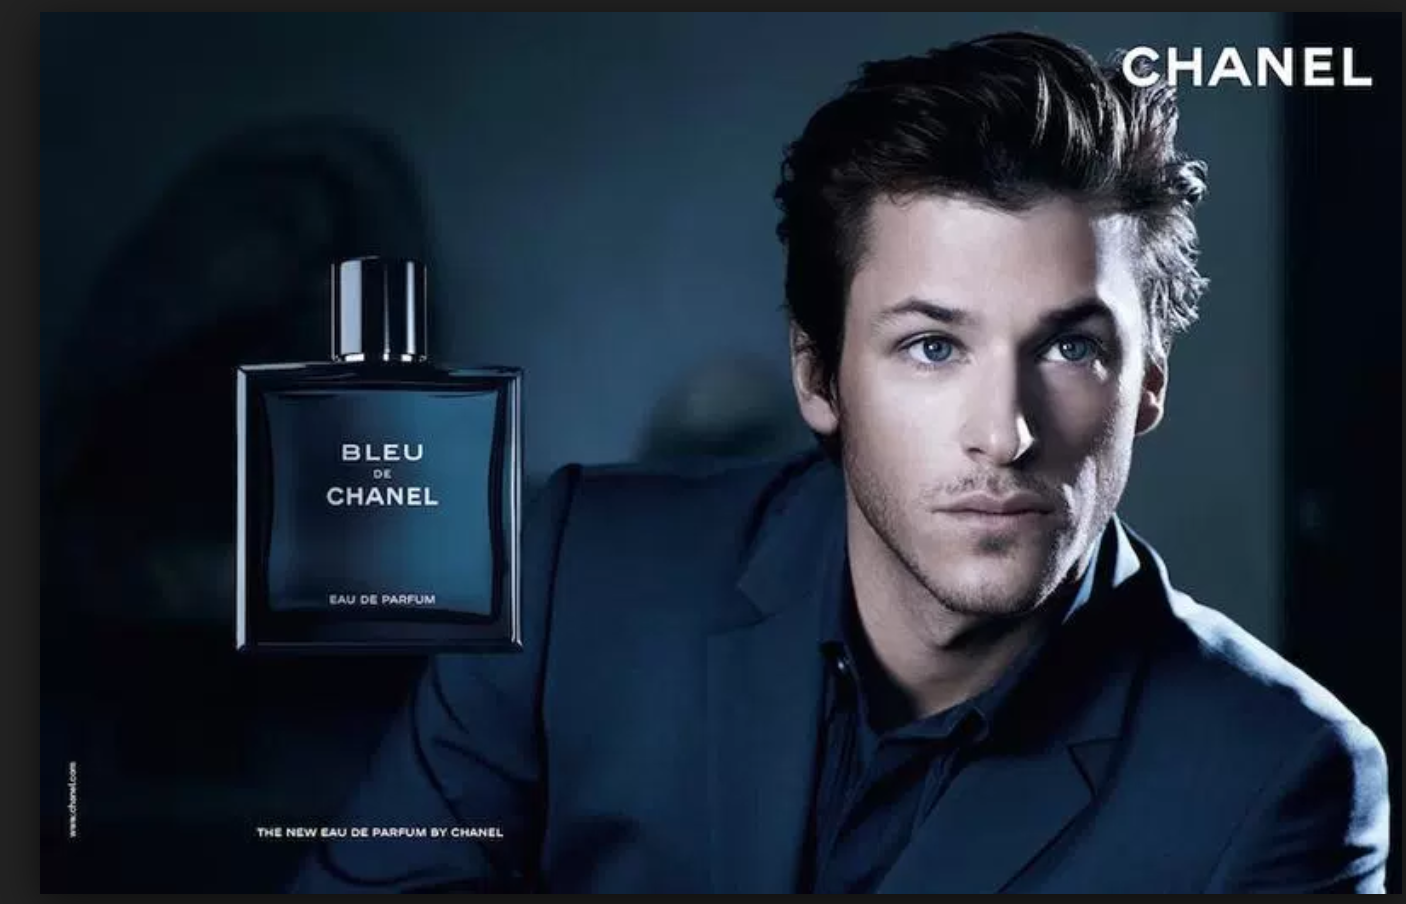 8db2e1fb0 Celebrity endorsement is another extremely influential factor for the  success of this parfum. The advertisement